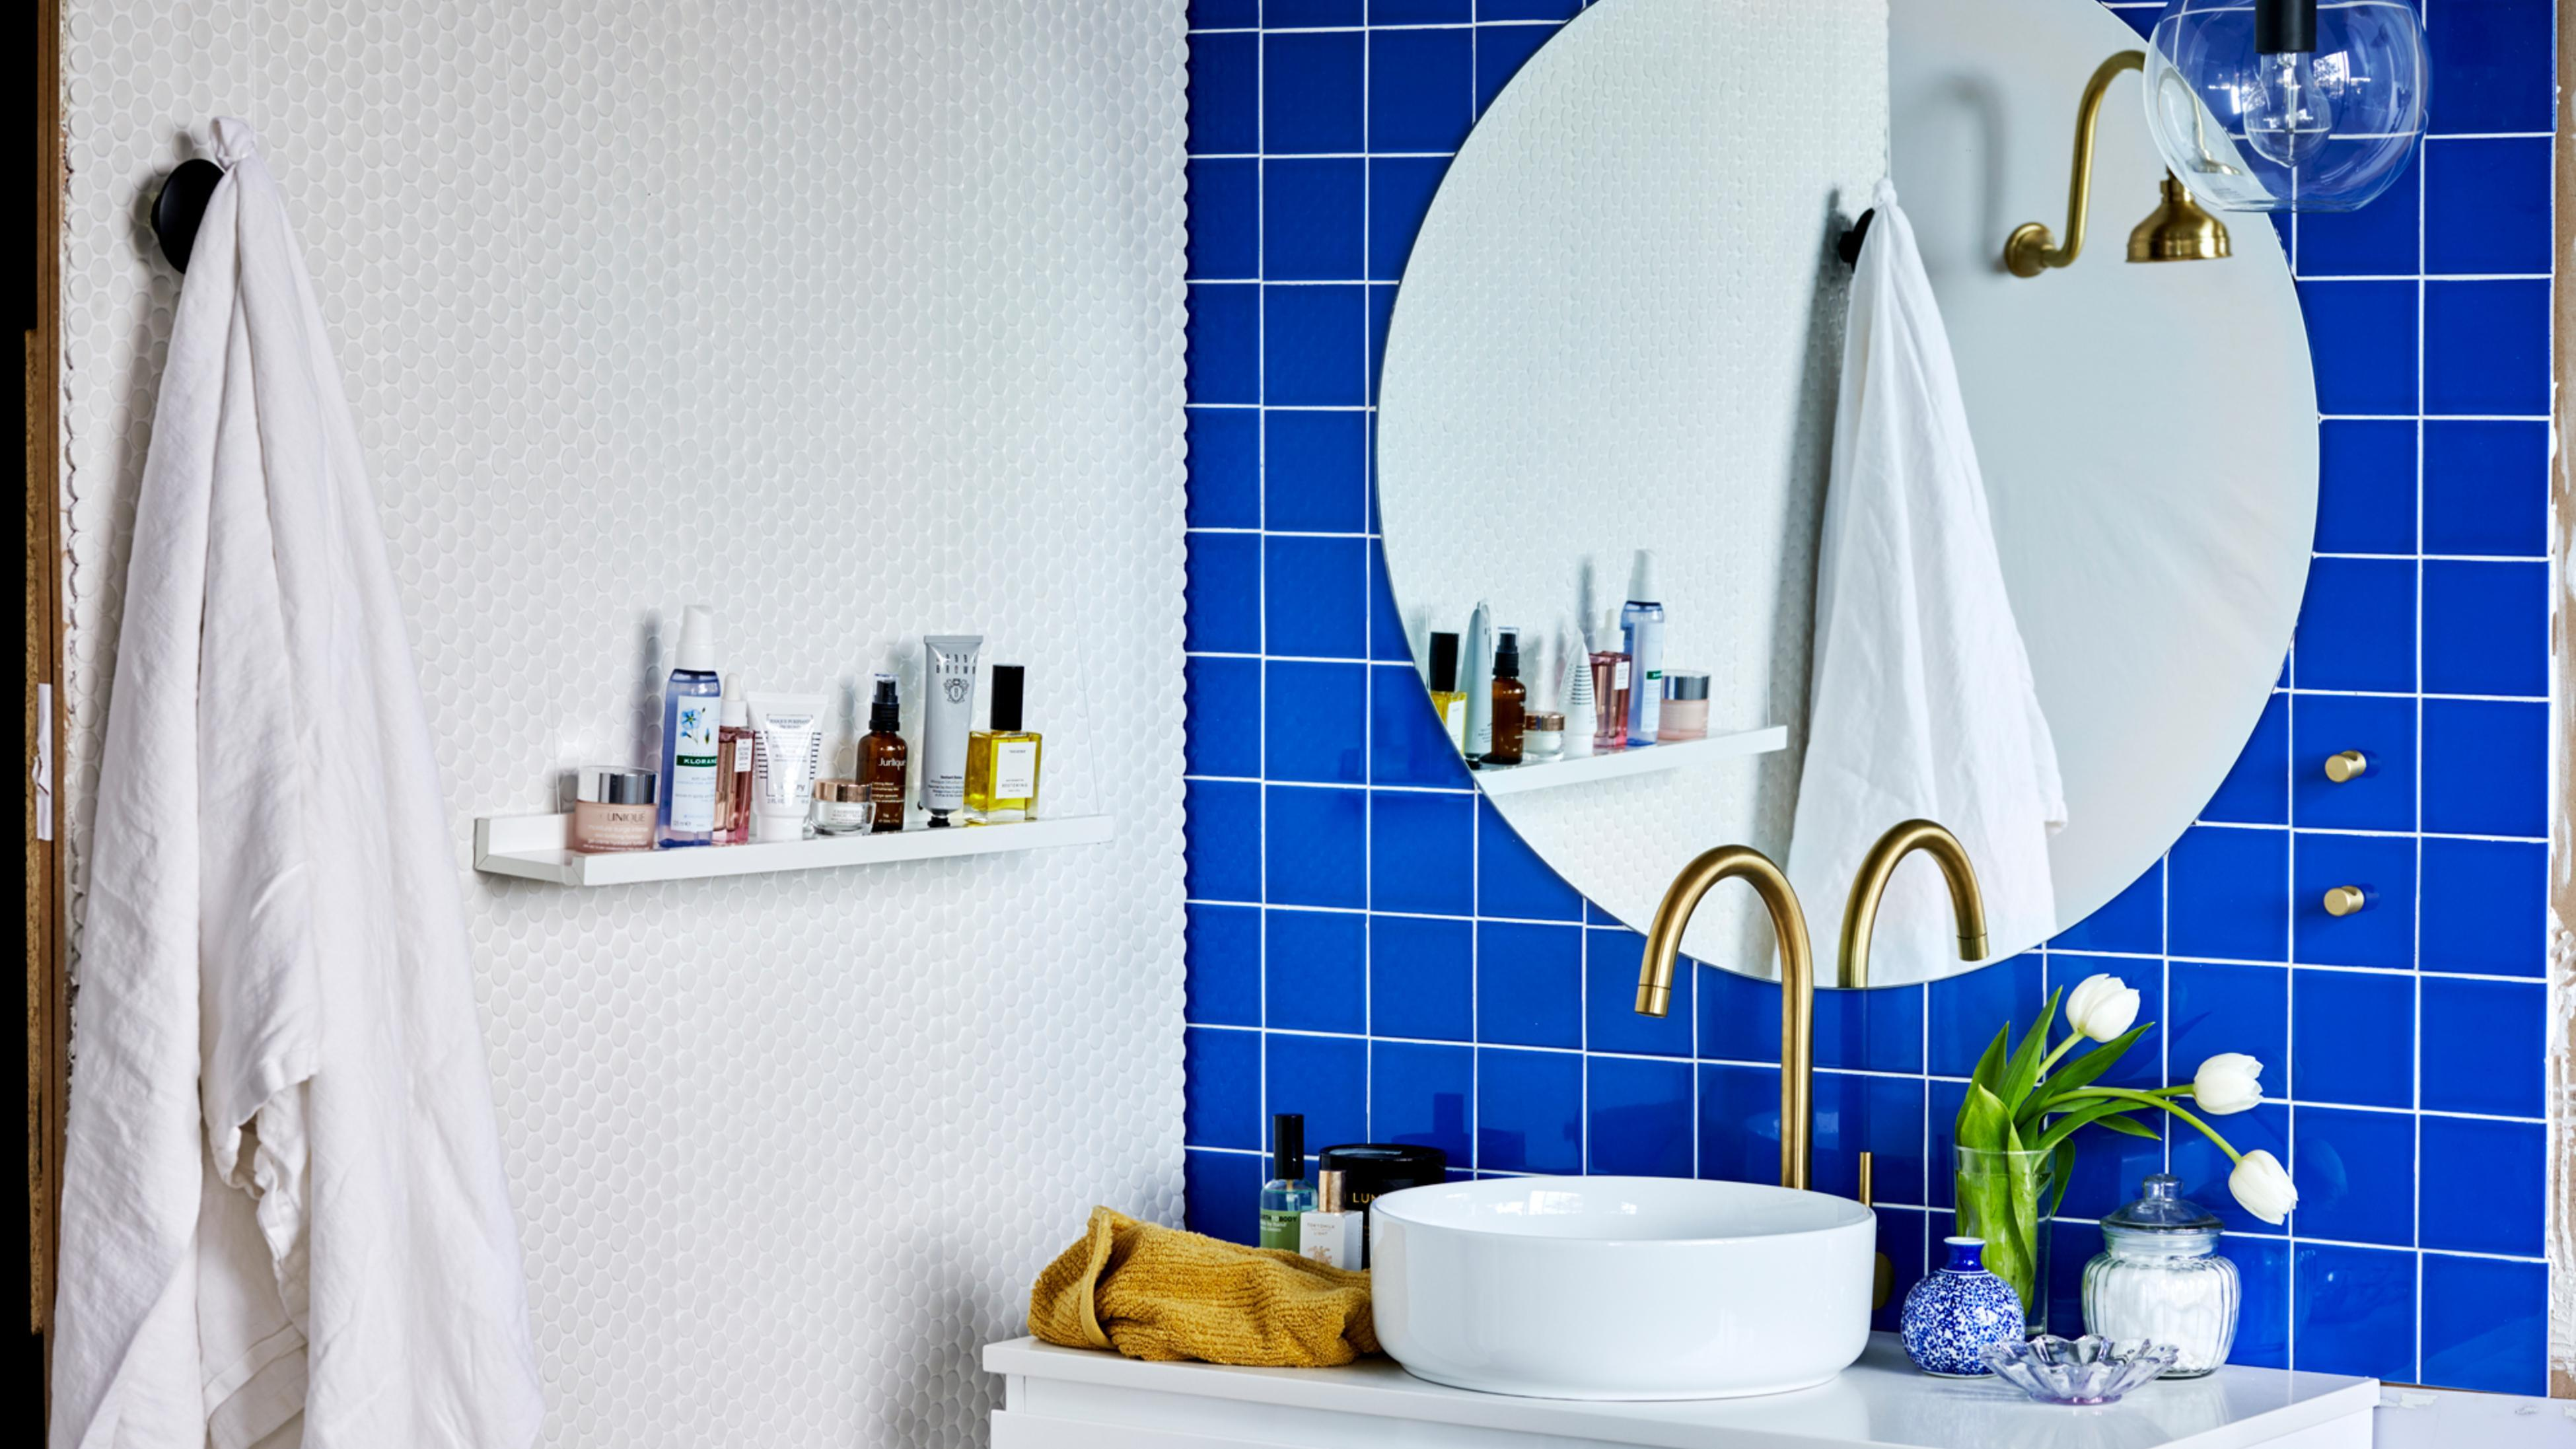 Bathroom with interesting blue and white tiled walls, gold tapware.